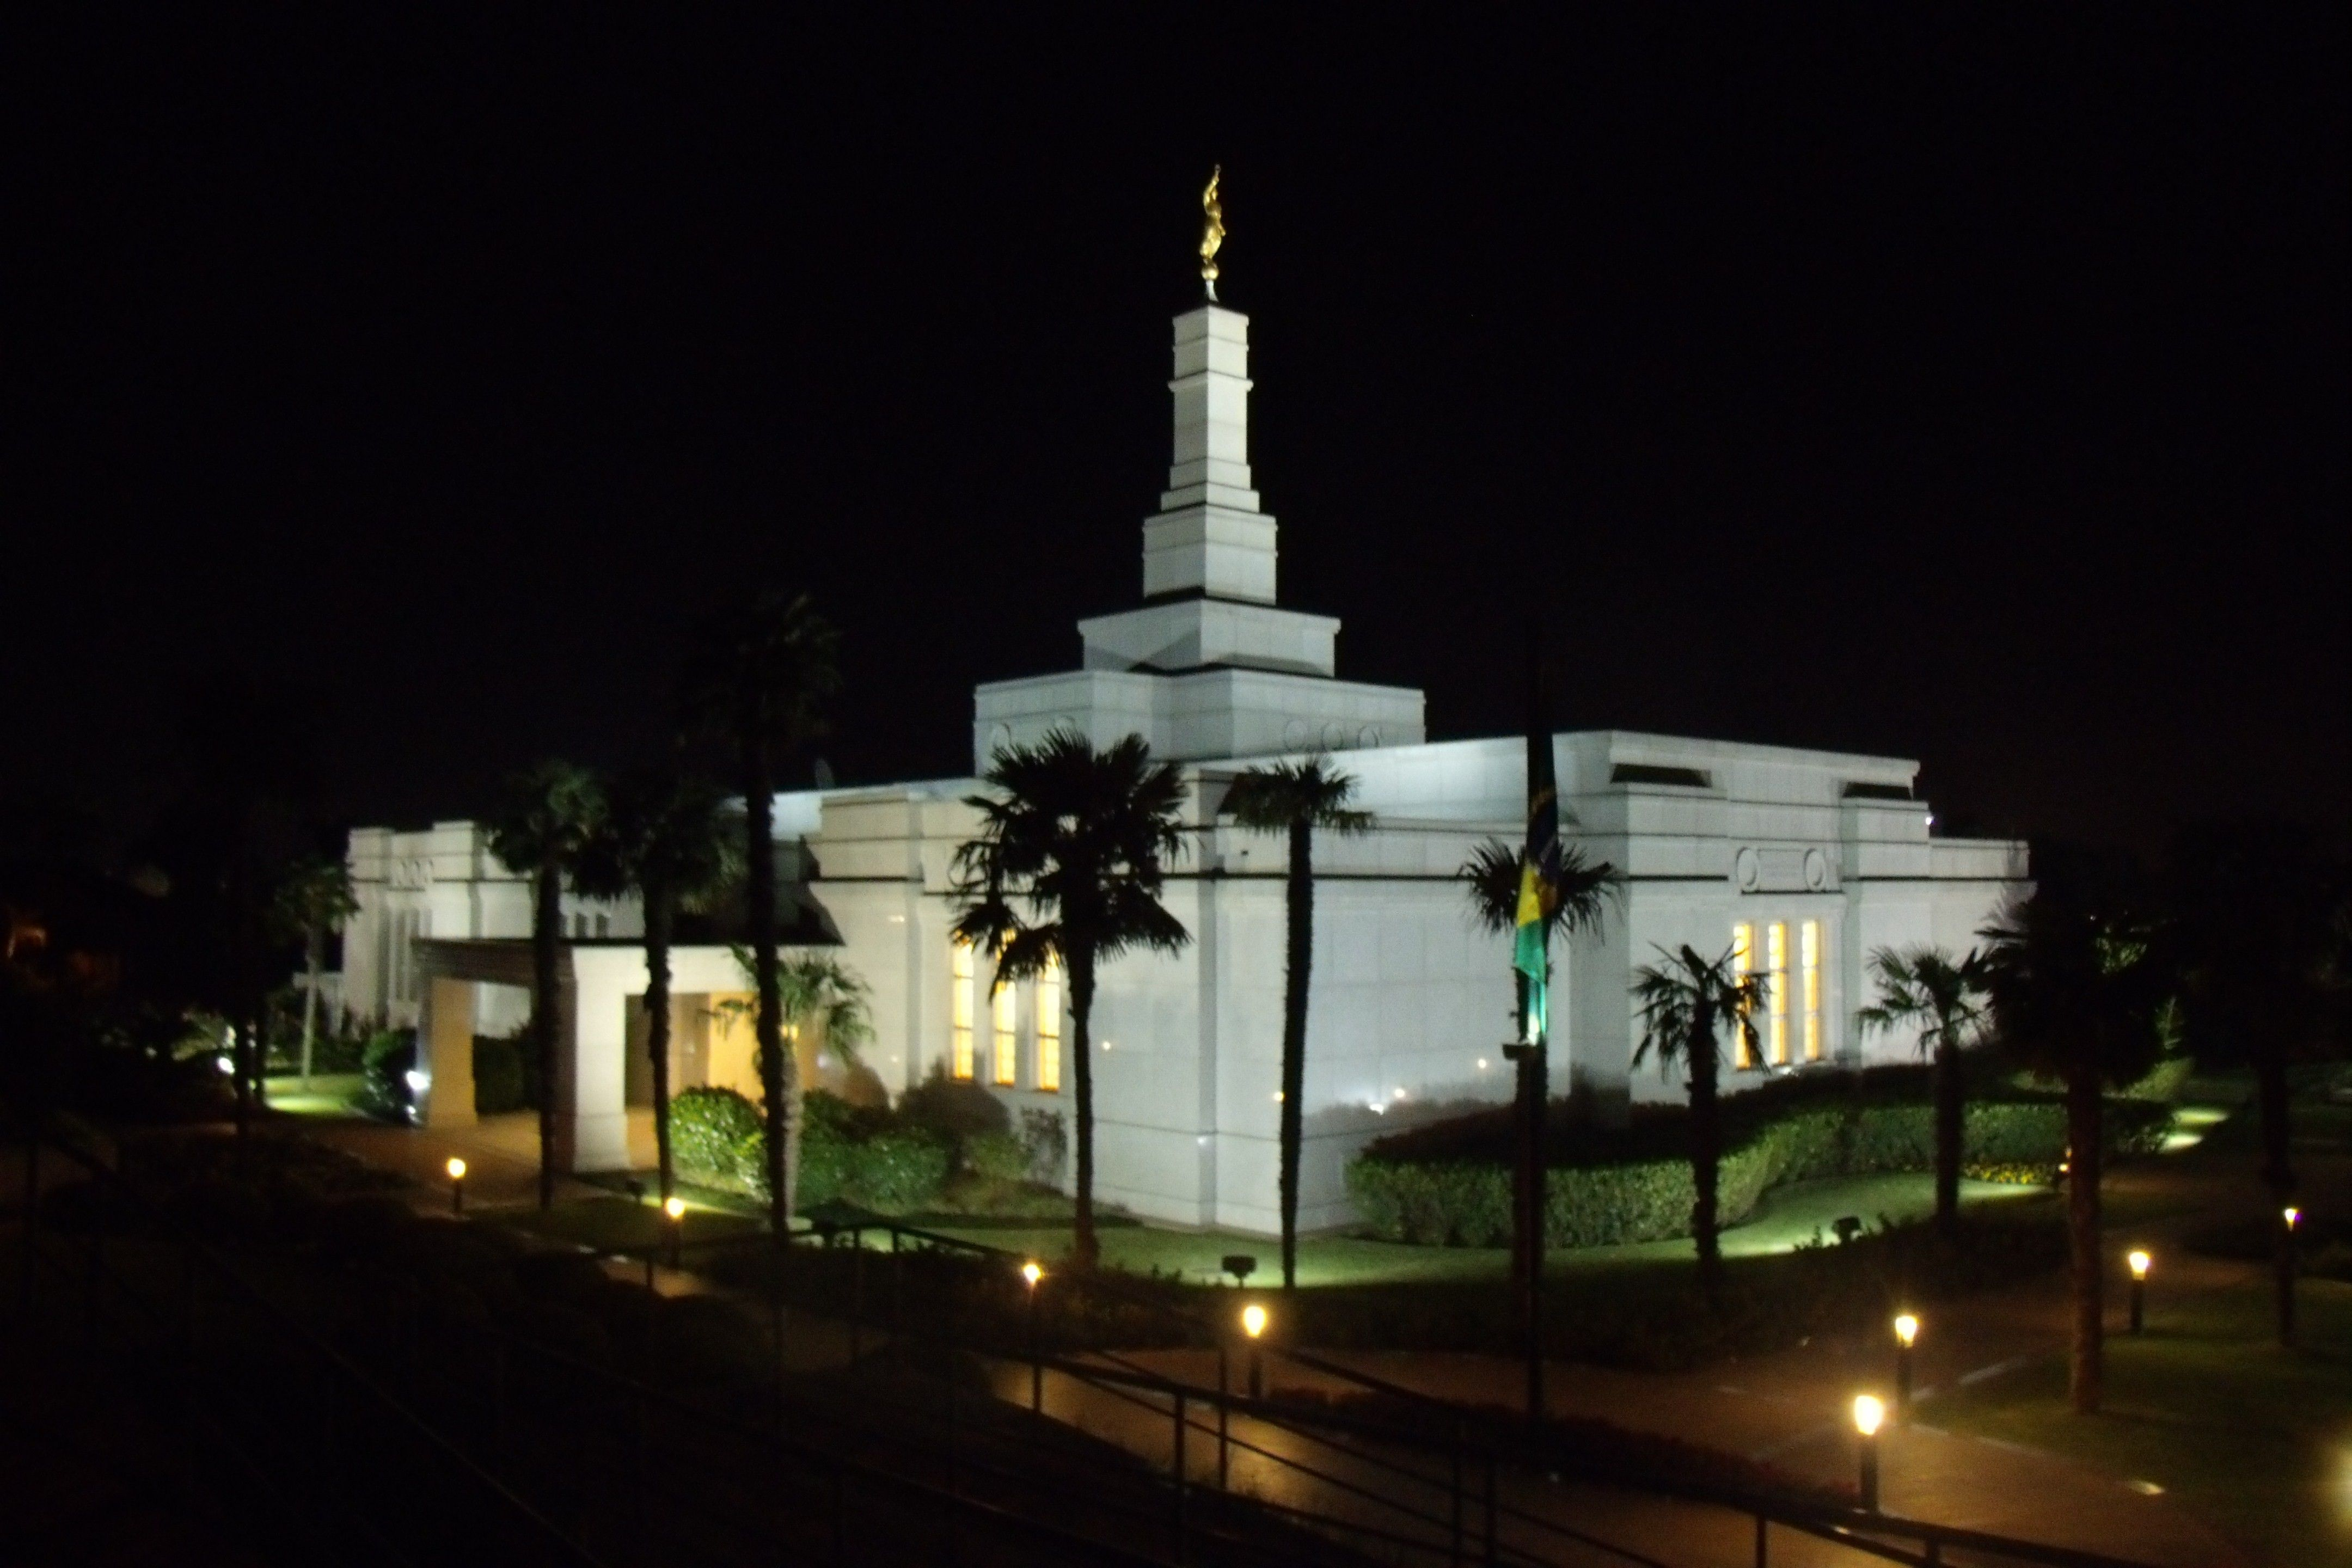 The Porto Alegre Brazil Temple in the evening, including the entrance and scenery.